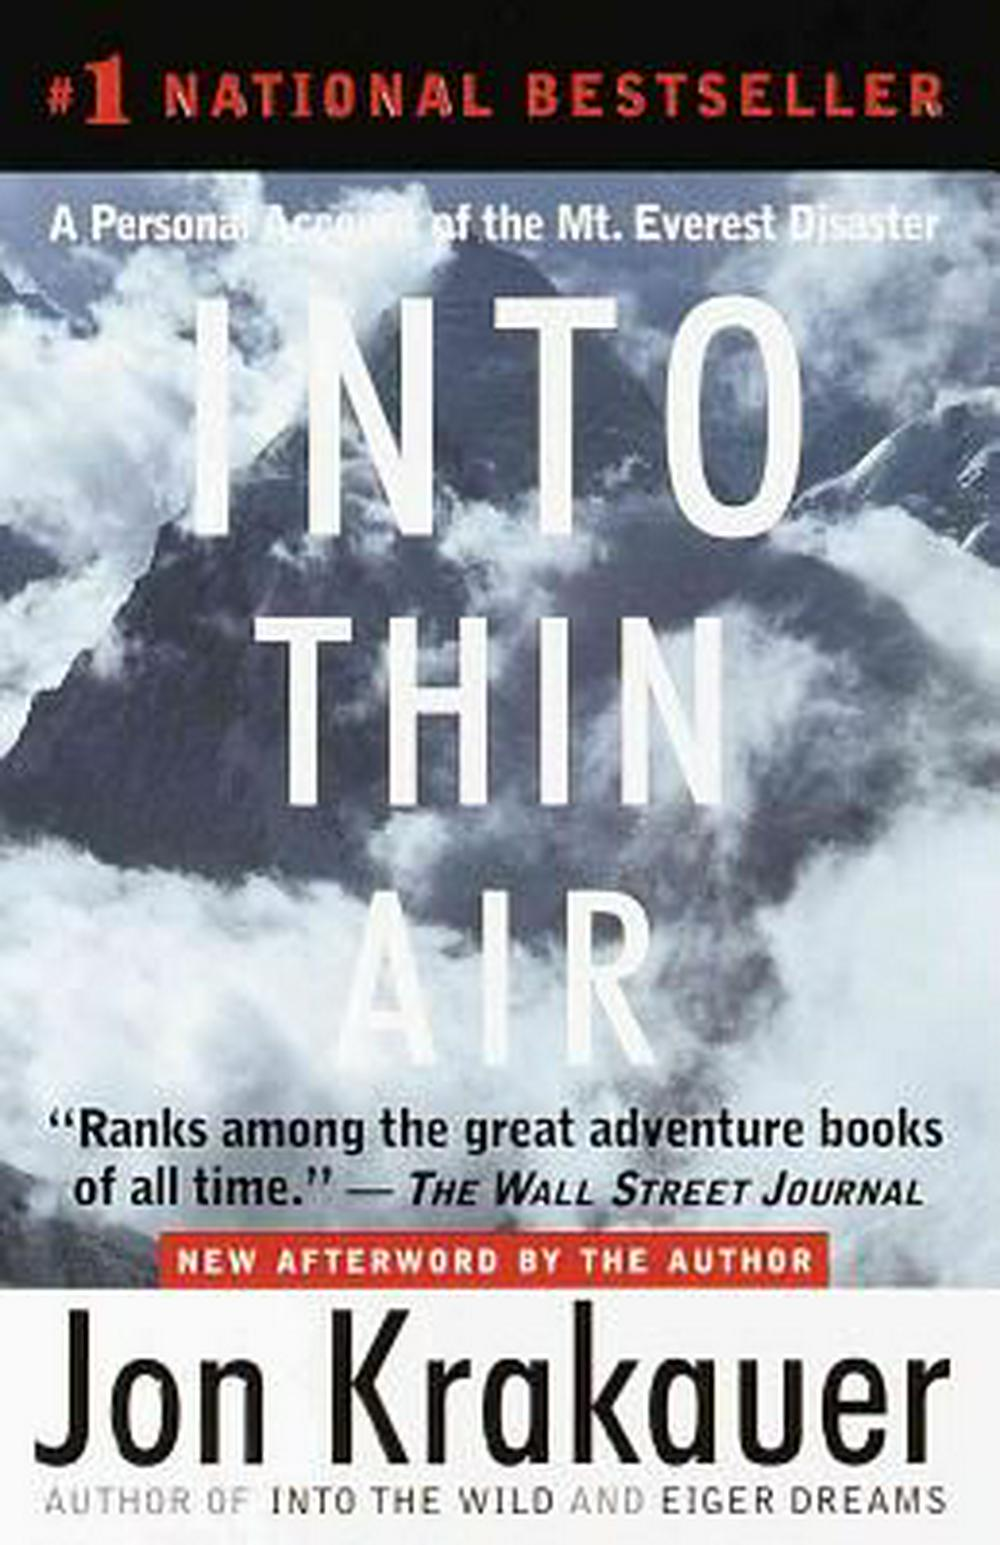 into the wild jon krakauer thesis Download thesis statement on into the wild by jon krakauer in our database or order an original thesis paper that will be written by one of our staff writers and delivered according to.